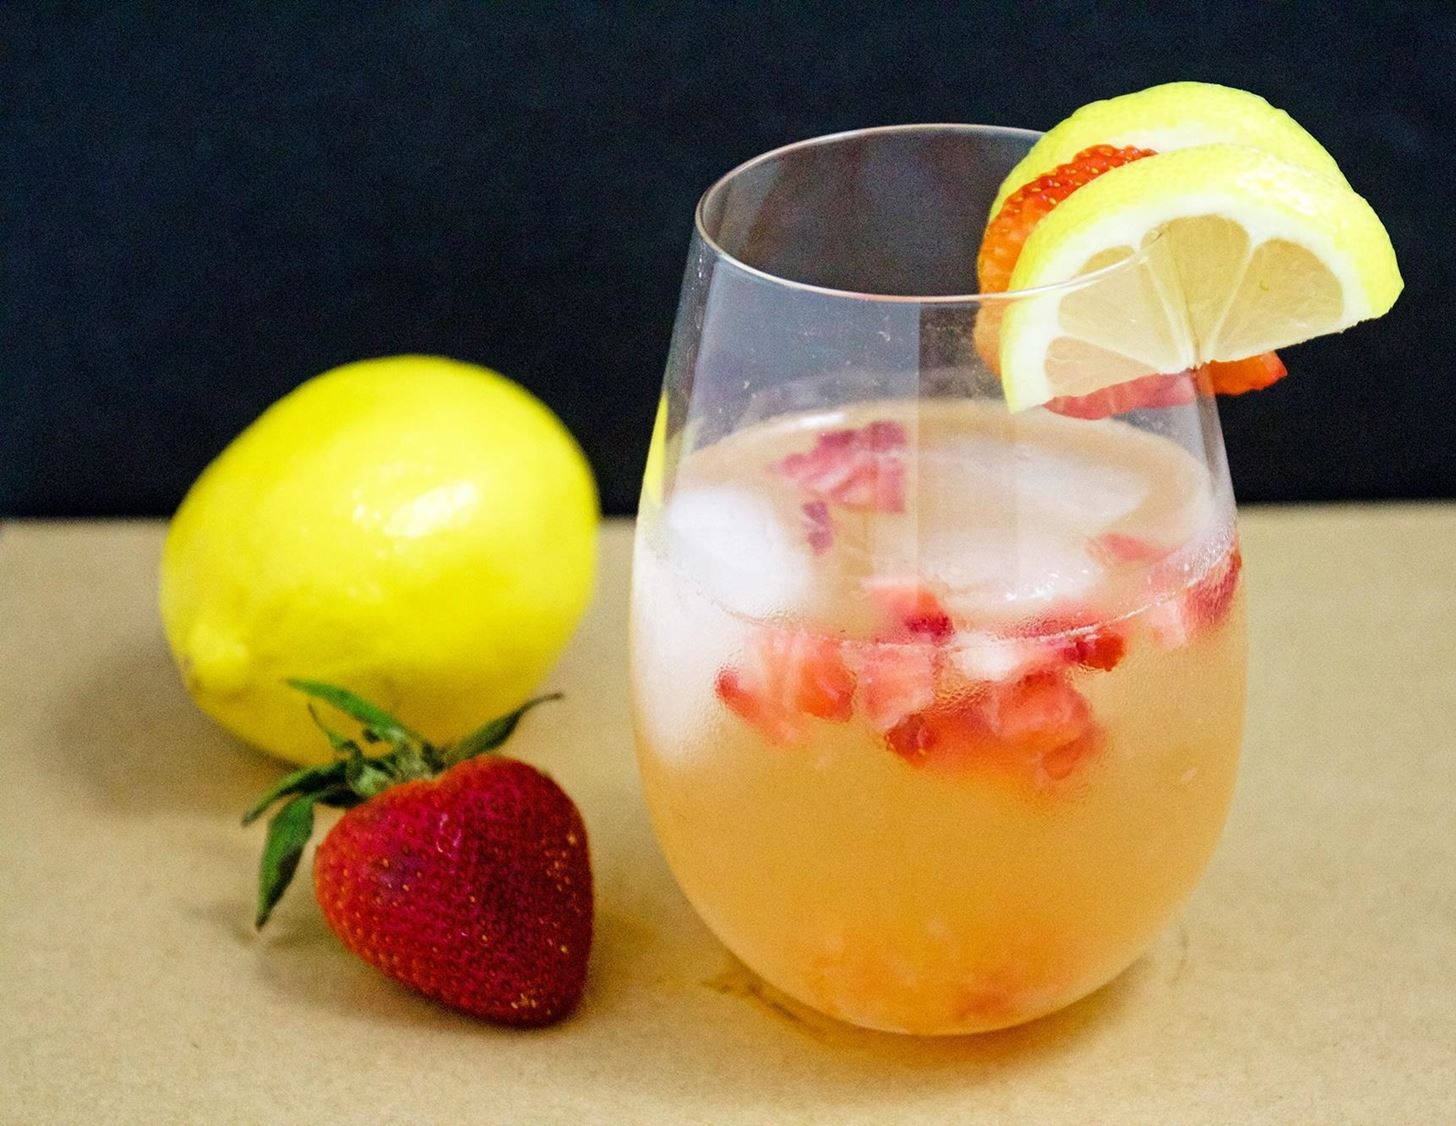 The Delicious Trick to 1-Minute Lemonade at Home